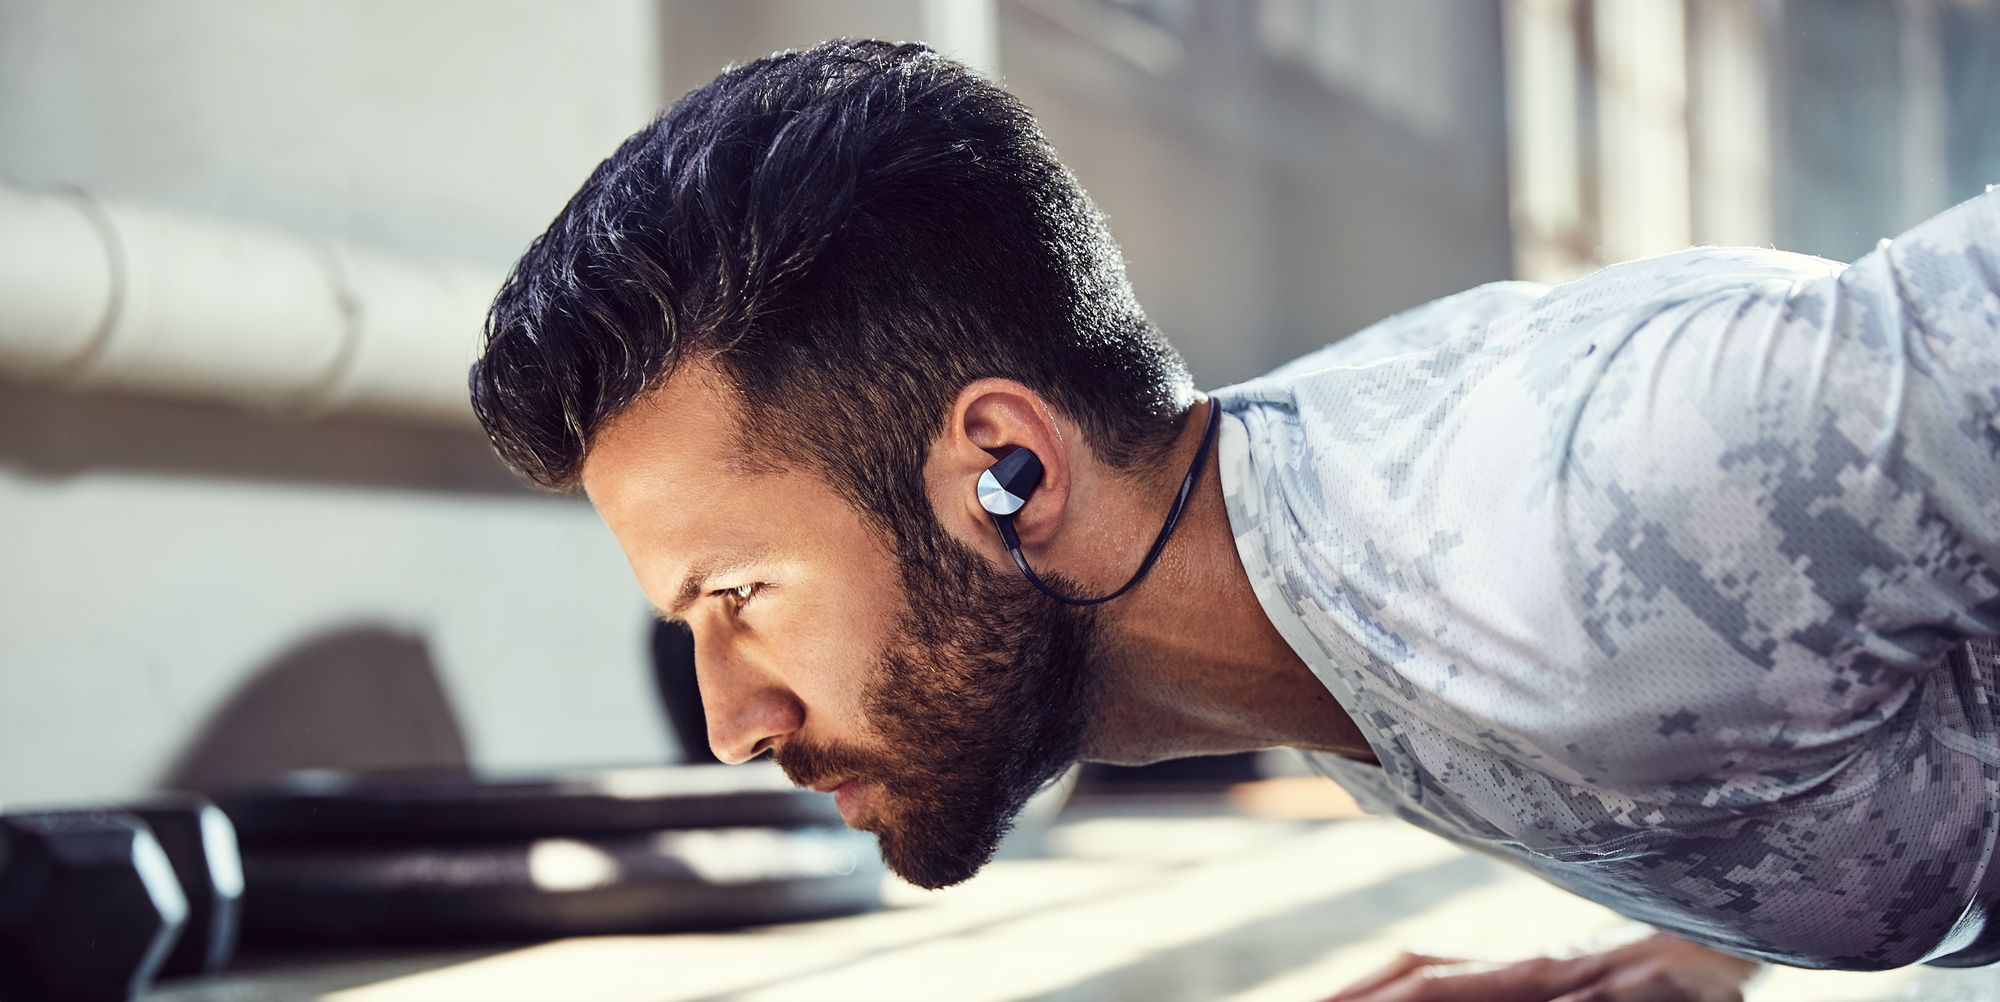 The 8 Best Headphones for Any Workout